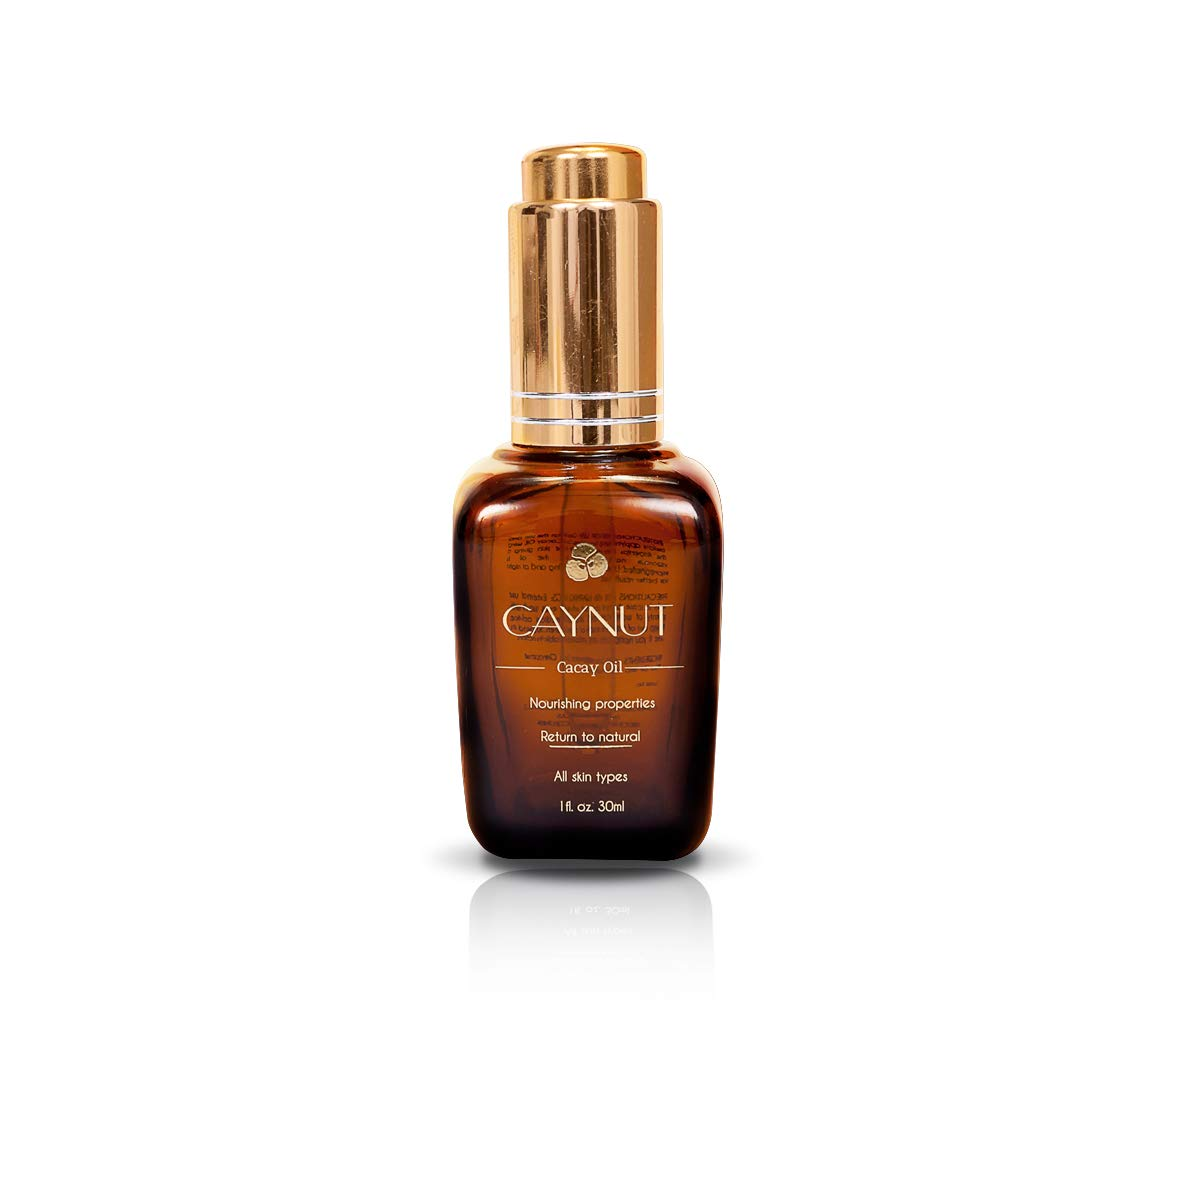 Caynut Nourishing Cacay Oil, High Retinol, Hydration and Anti Aging Night Repair Formula 100% Natural